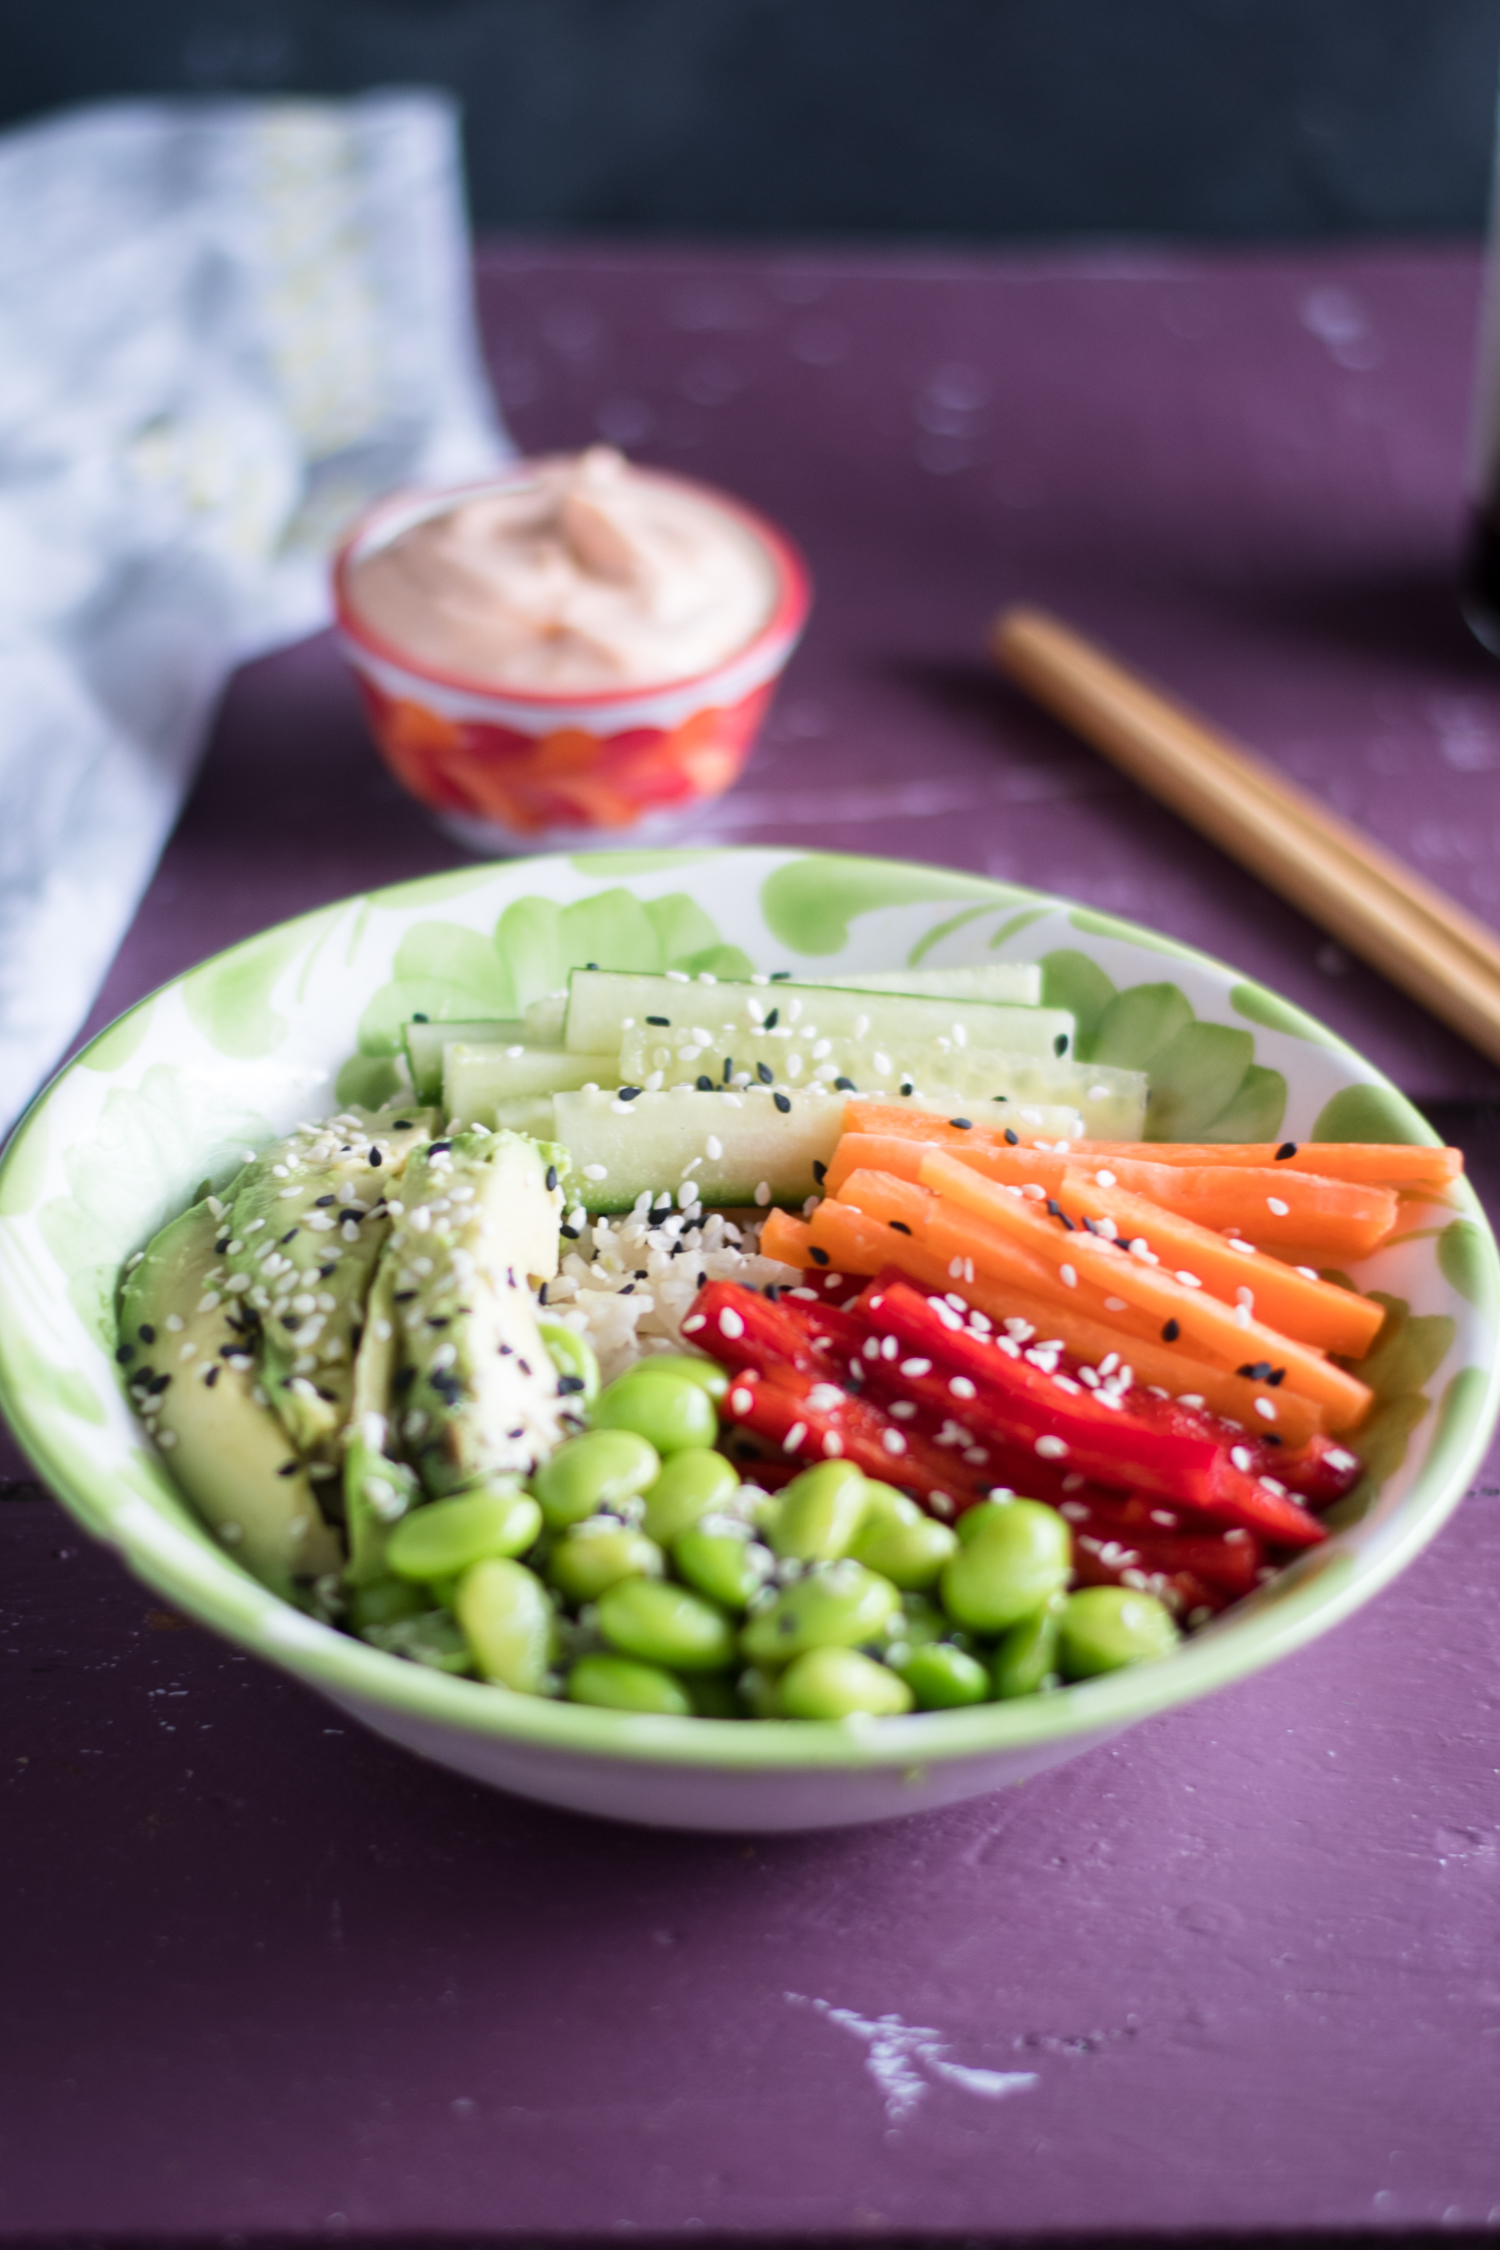 Vegan Sushi Bowl served over green tea infused rice. Topped with a variety of vegetables. #vegan #rice #tea #vegan #recipes #glutenfree #healthy